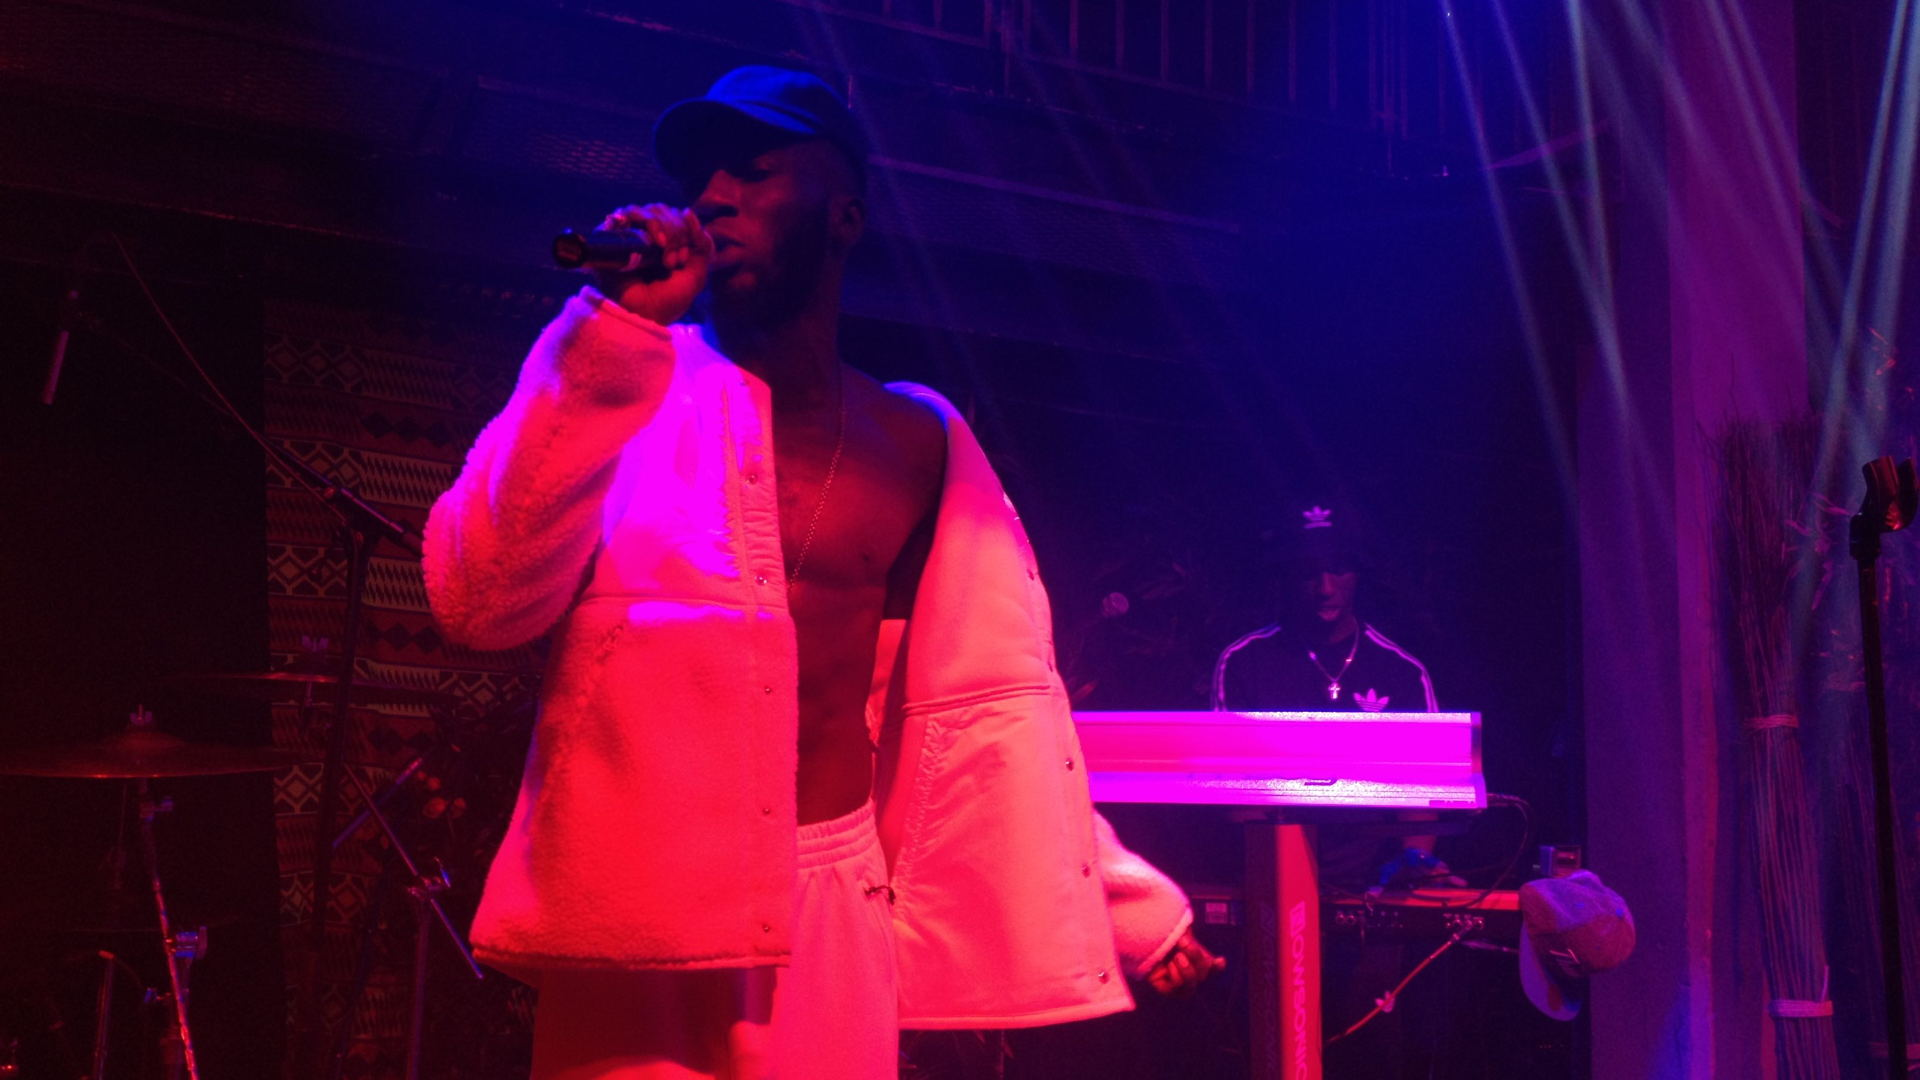 Kojey Radical, Jazz Cafe, by Aaron Lee, 01 (1920x1080)